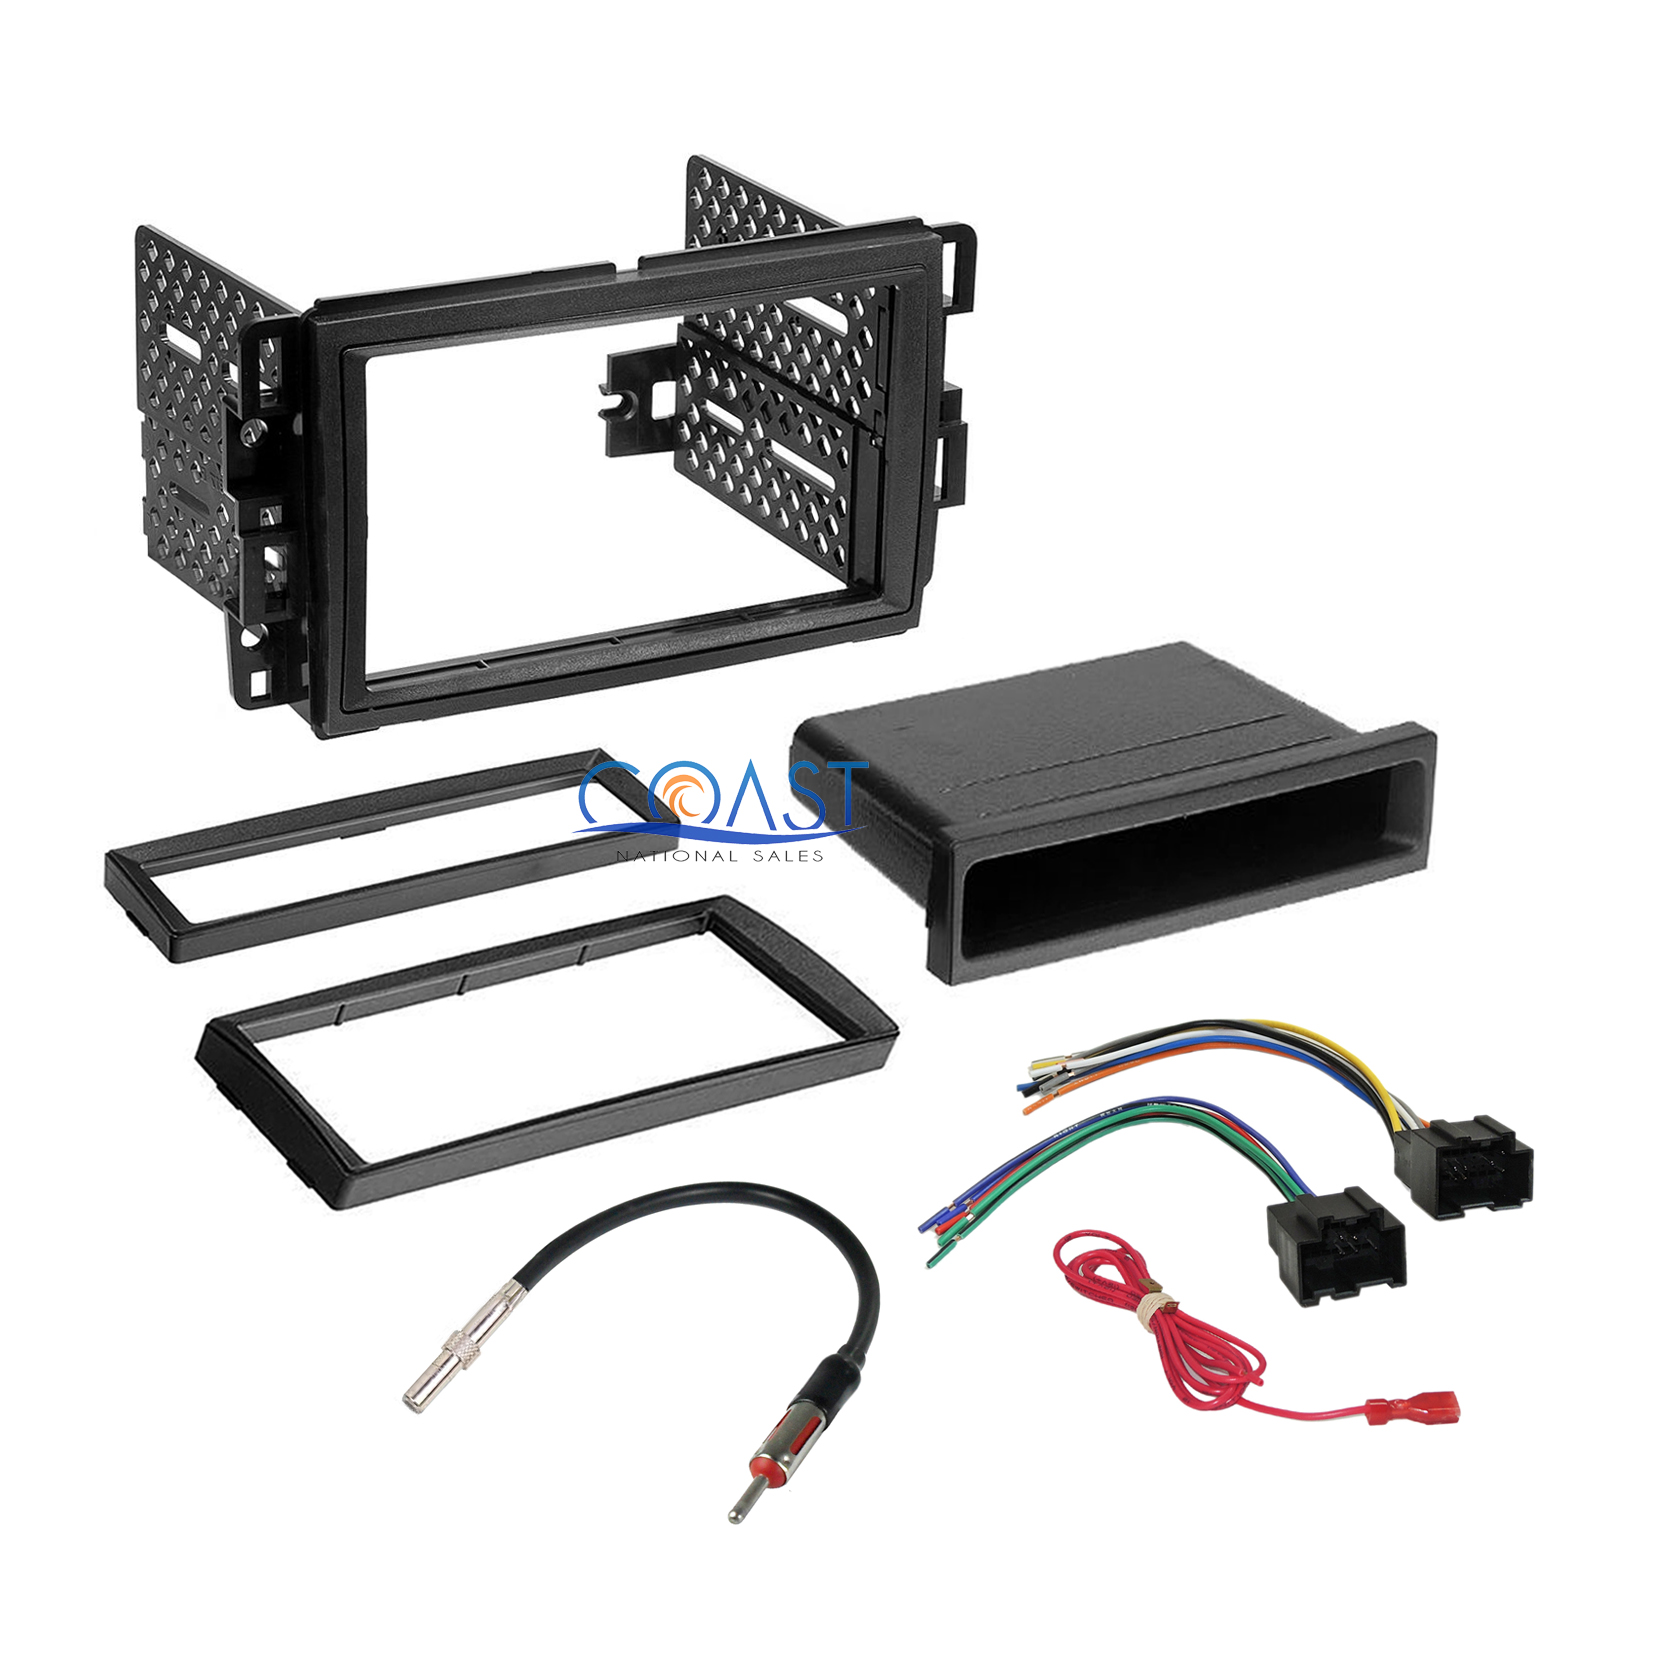 Metra 70 2104 Radio Wiring Harness For 06 Up Gm : Car radio stereo dash kit harness for up buick